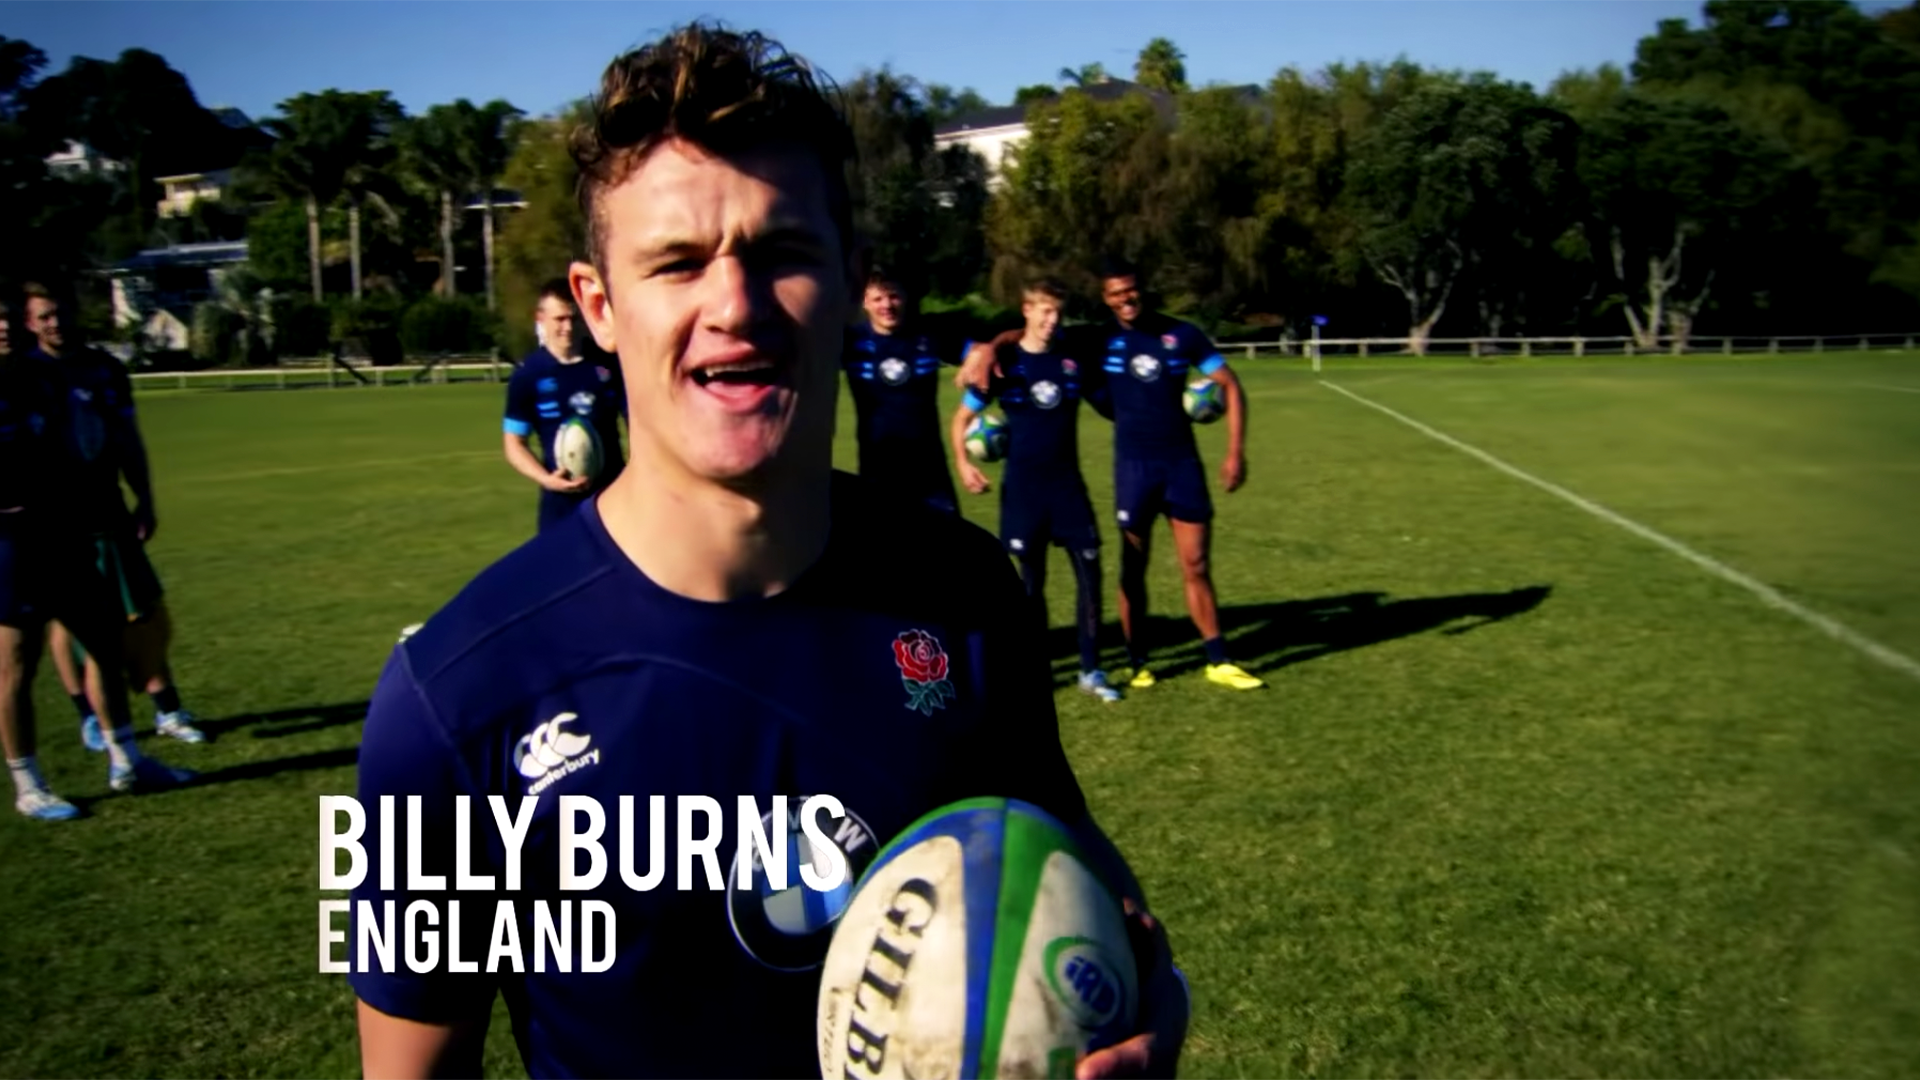 6 year old Billy Burns video taken over by trolls following Six Nations clash